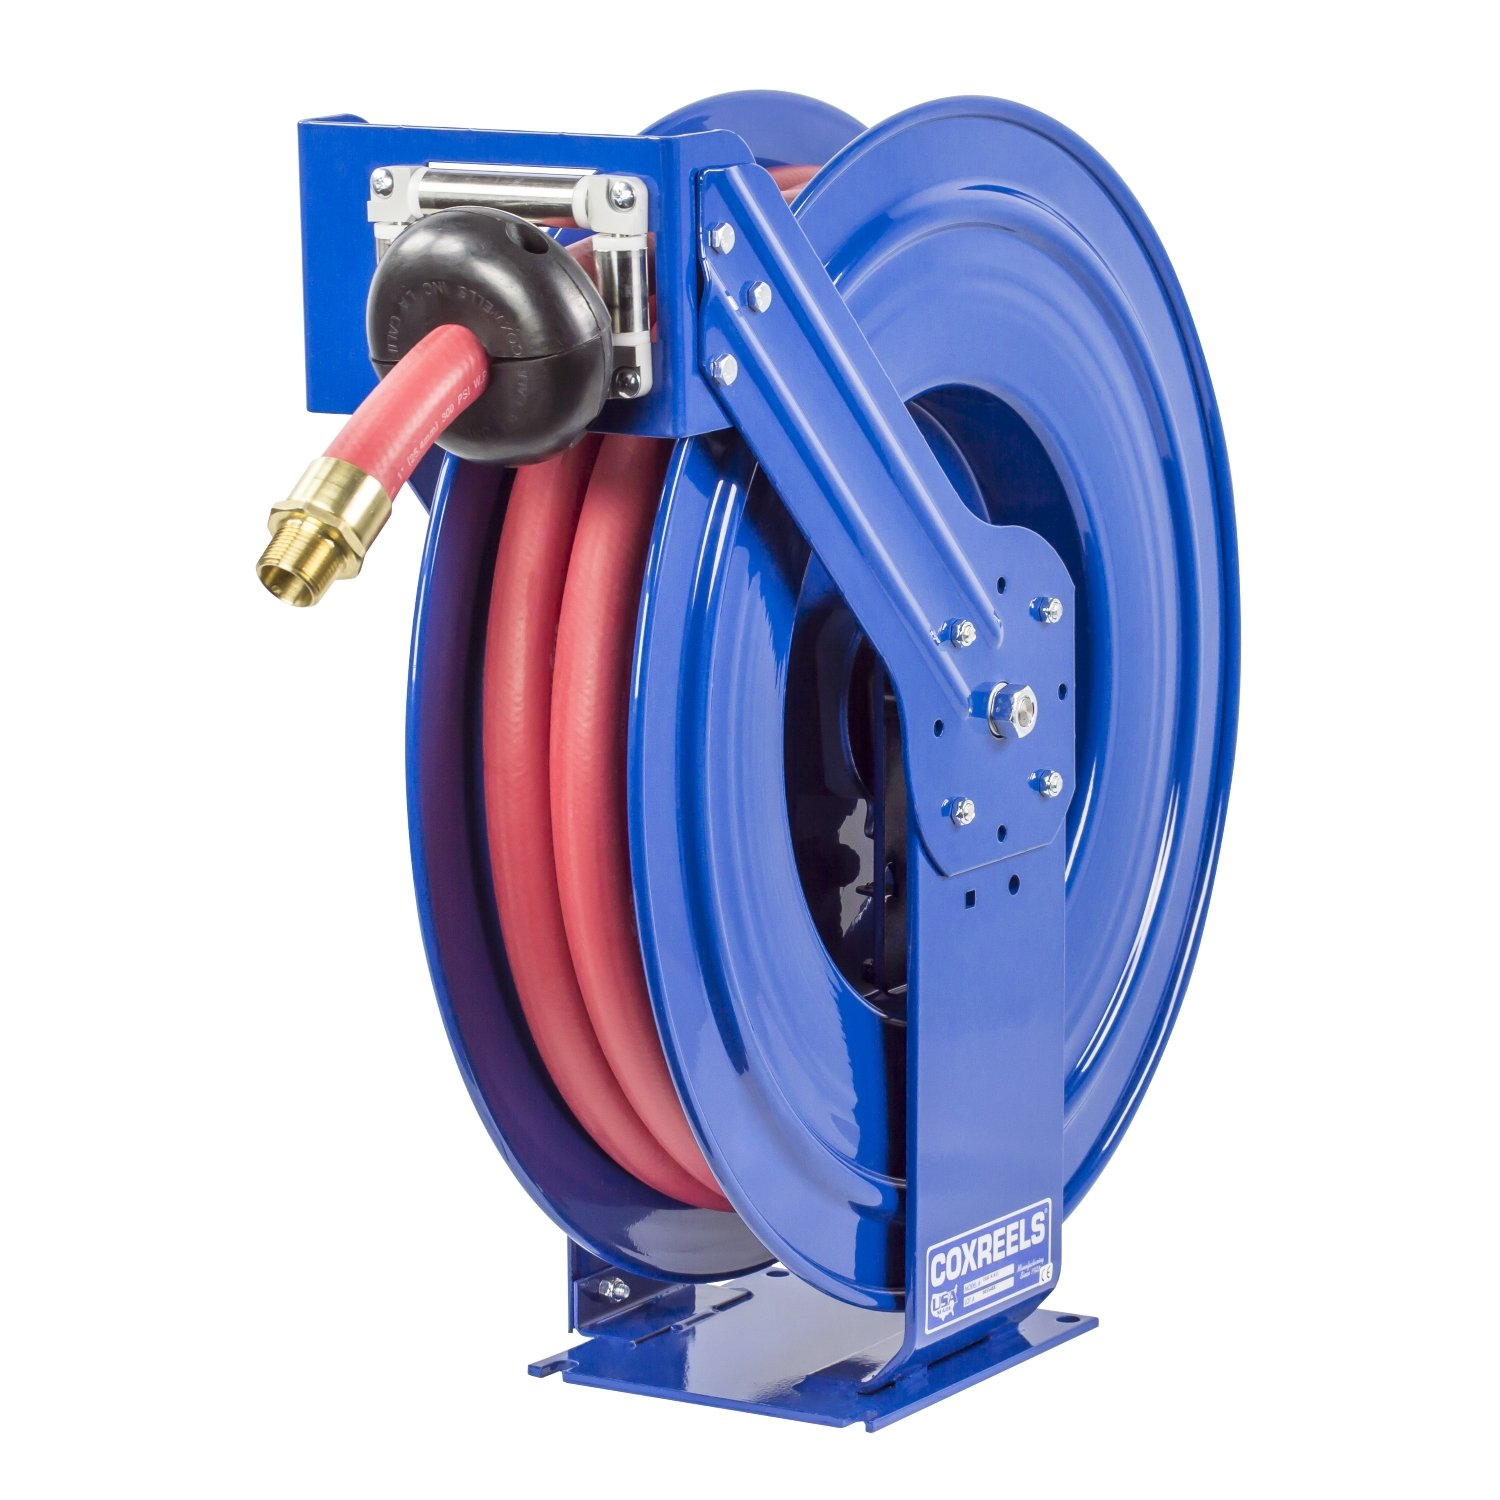 Coxreels Spring-Driven Fuel Hose Reel with Hose, Model# TSHF-N-550, 3/4'' Hose ID, 50' Length